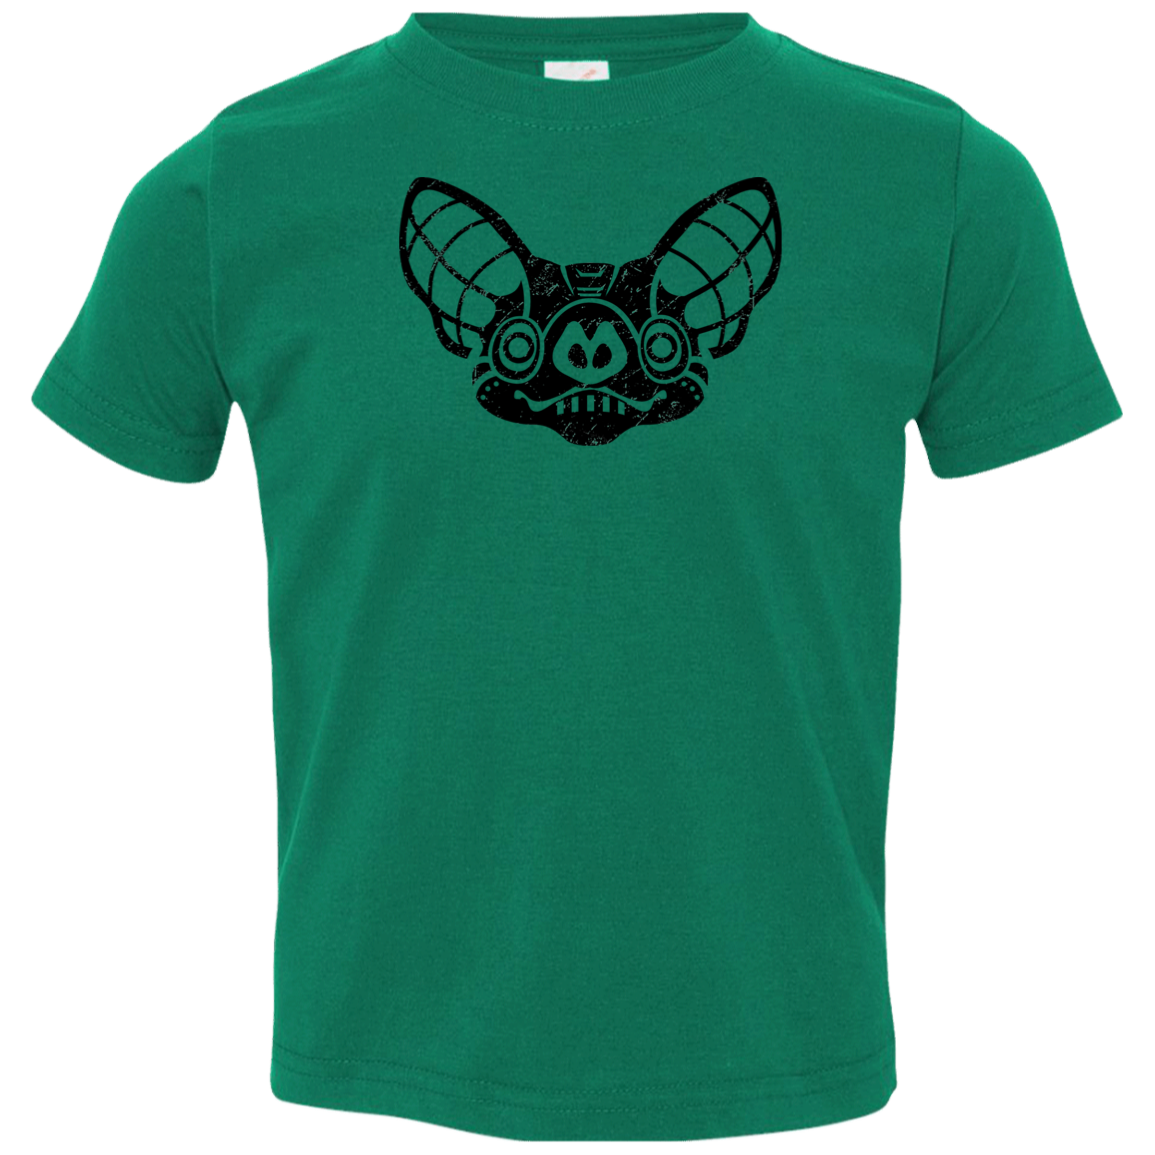 Black Distressed Emblem T-Shirt for Toddlers (Bat/Radar)